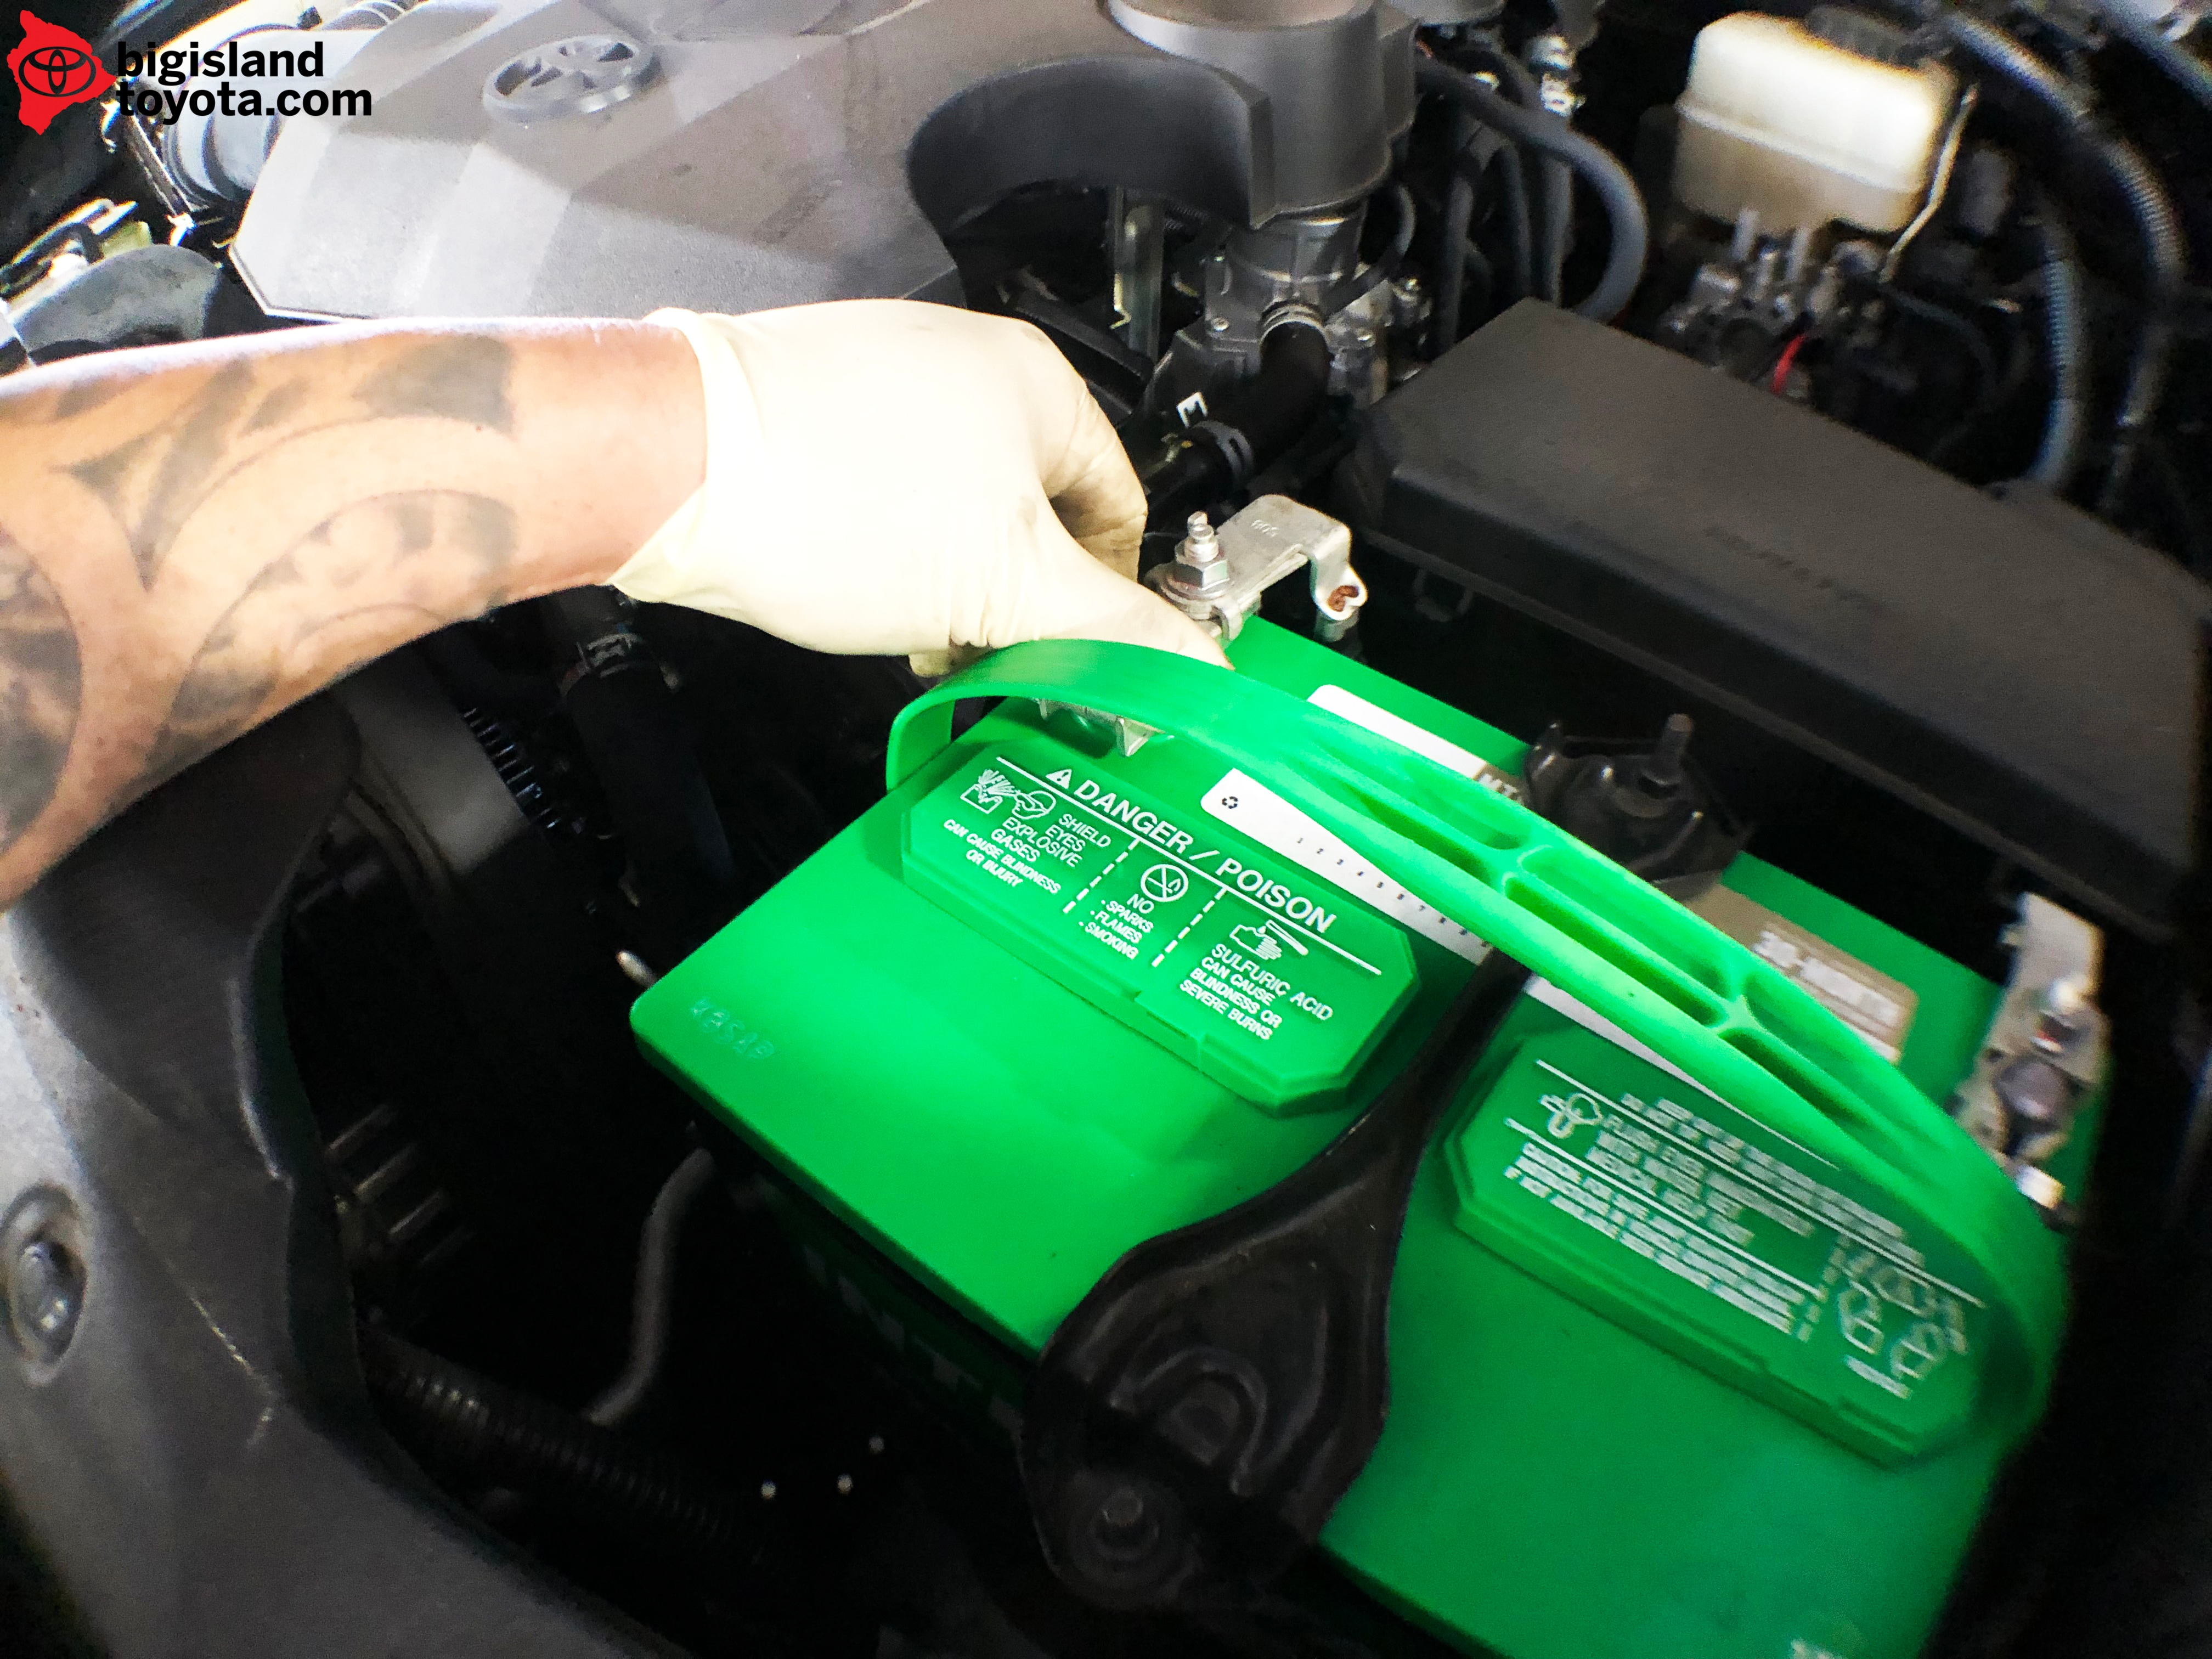 Battery Check is important!